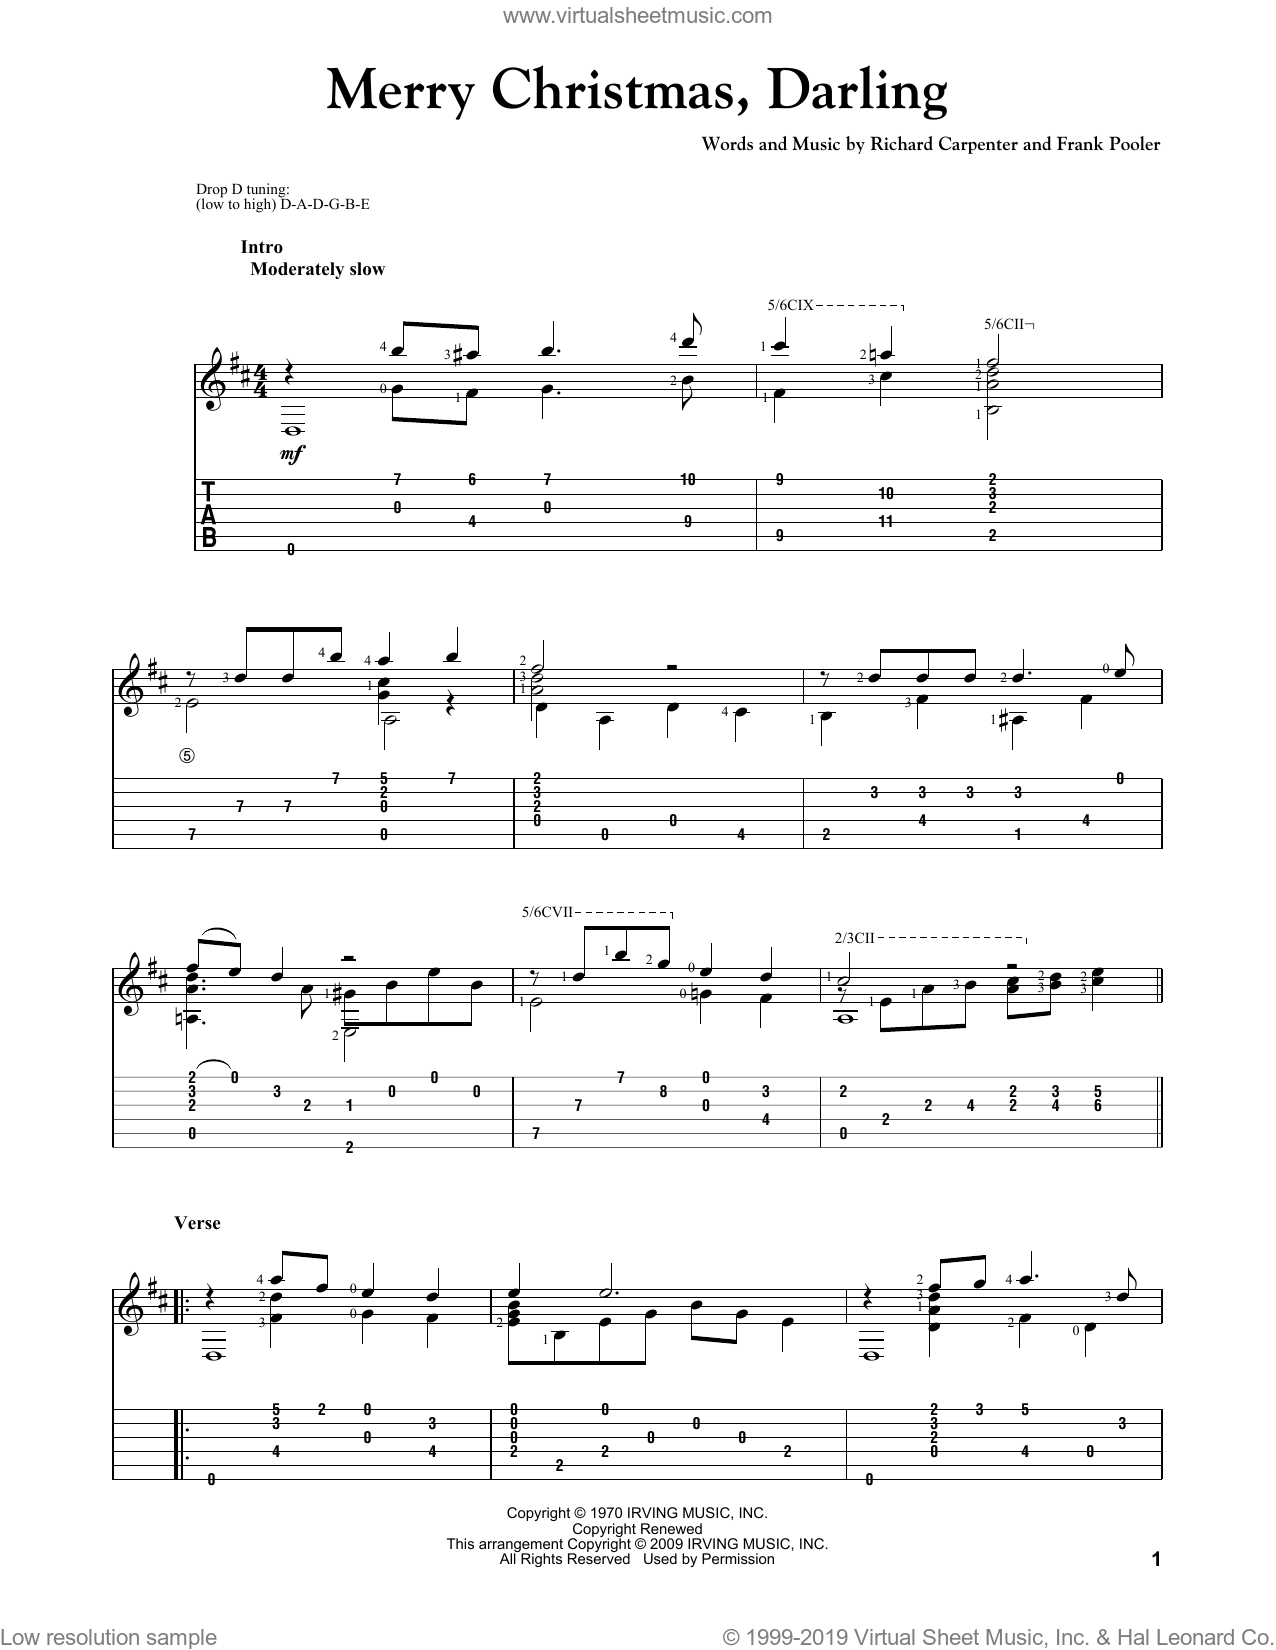 Merry Christmas, Darling sheet music for guitar solo by Richard Carpenter, Carpenters and Frank Pooler. Score Image Preview.